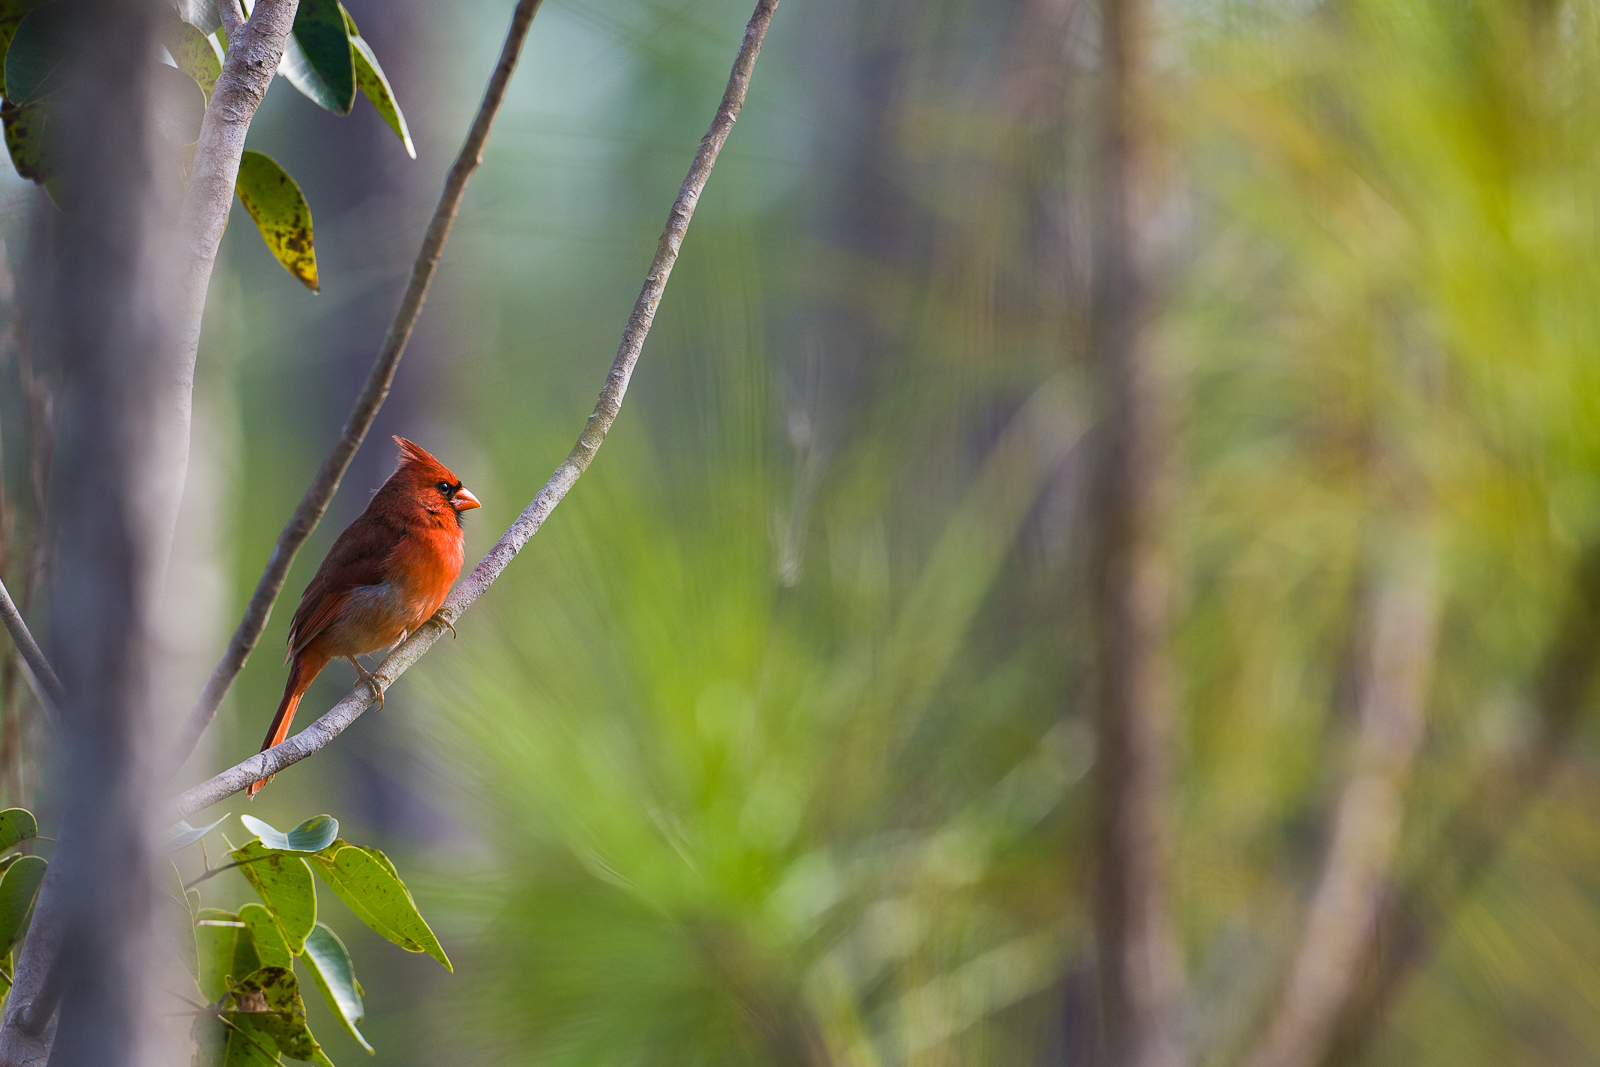 A sign of happiness, the ruby red male Cardinal enjoys winter in the warmer climate of the Florida Everglades.